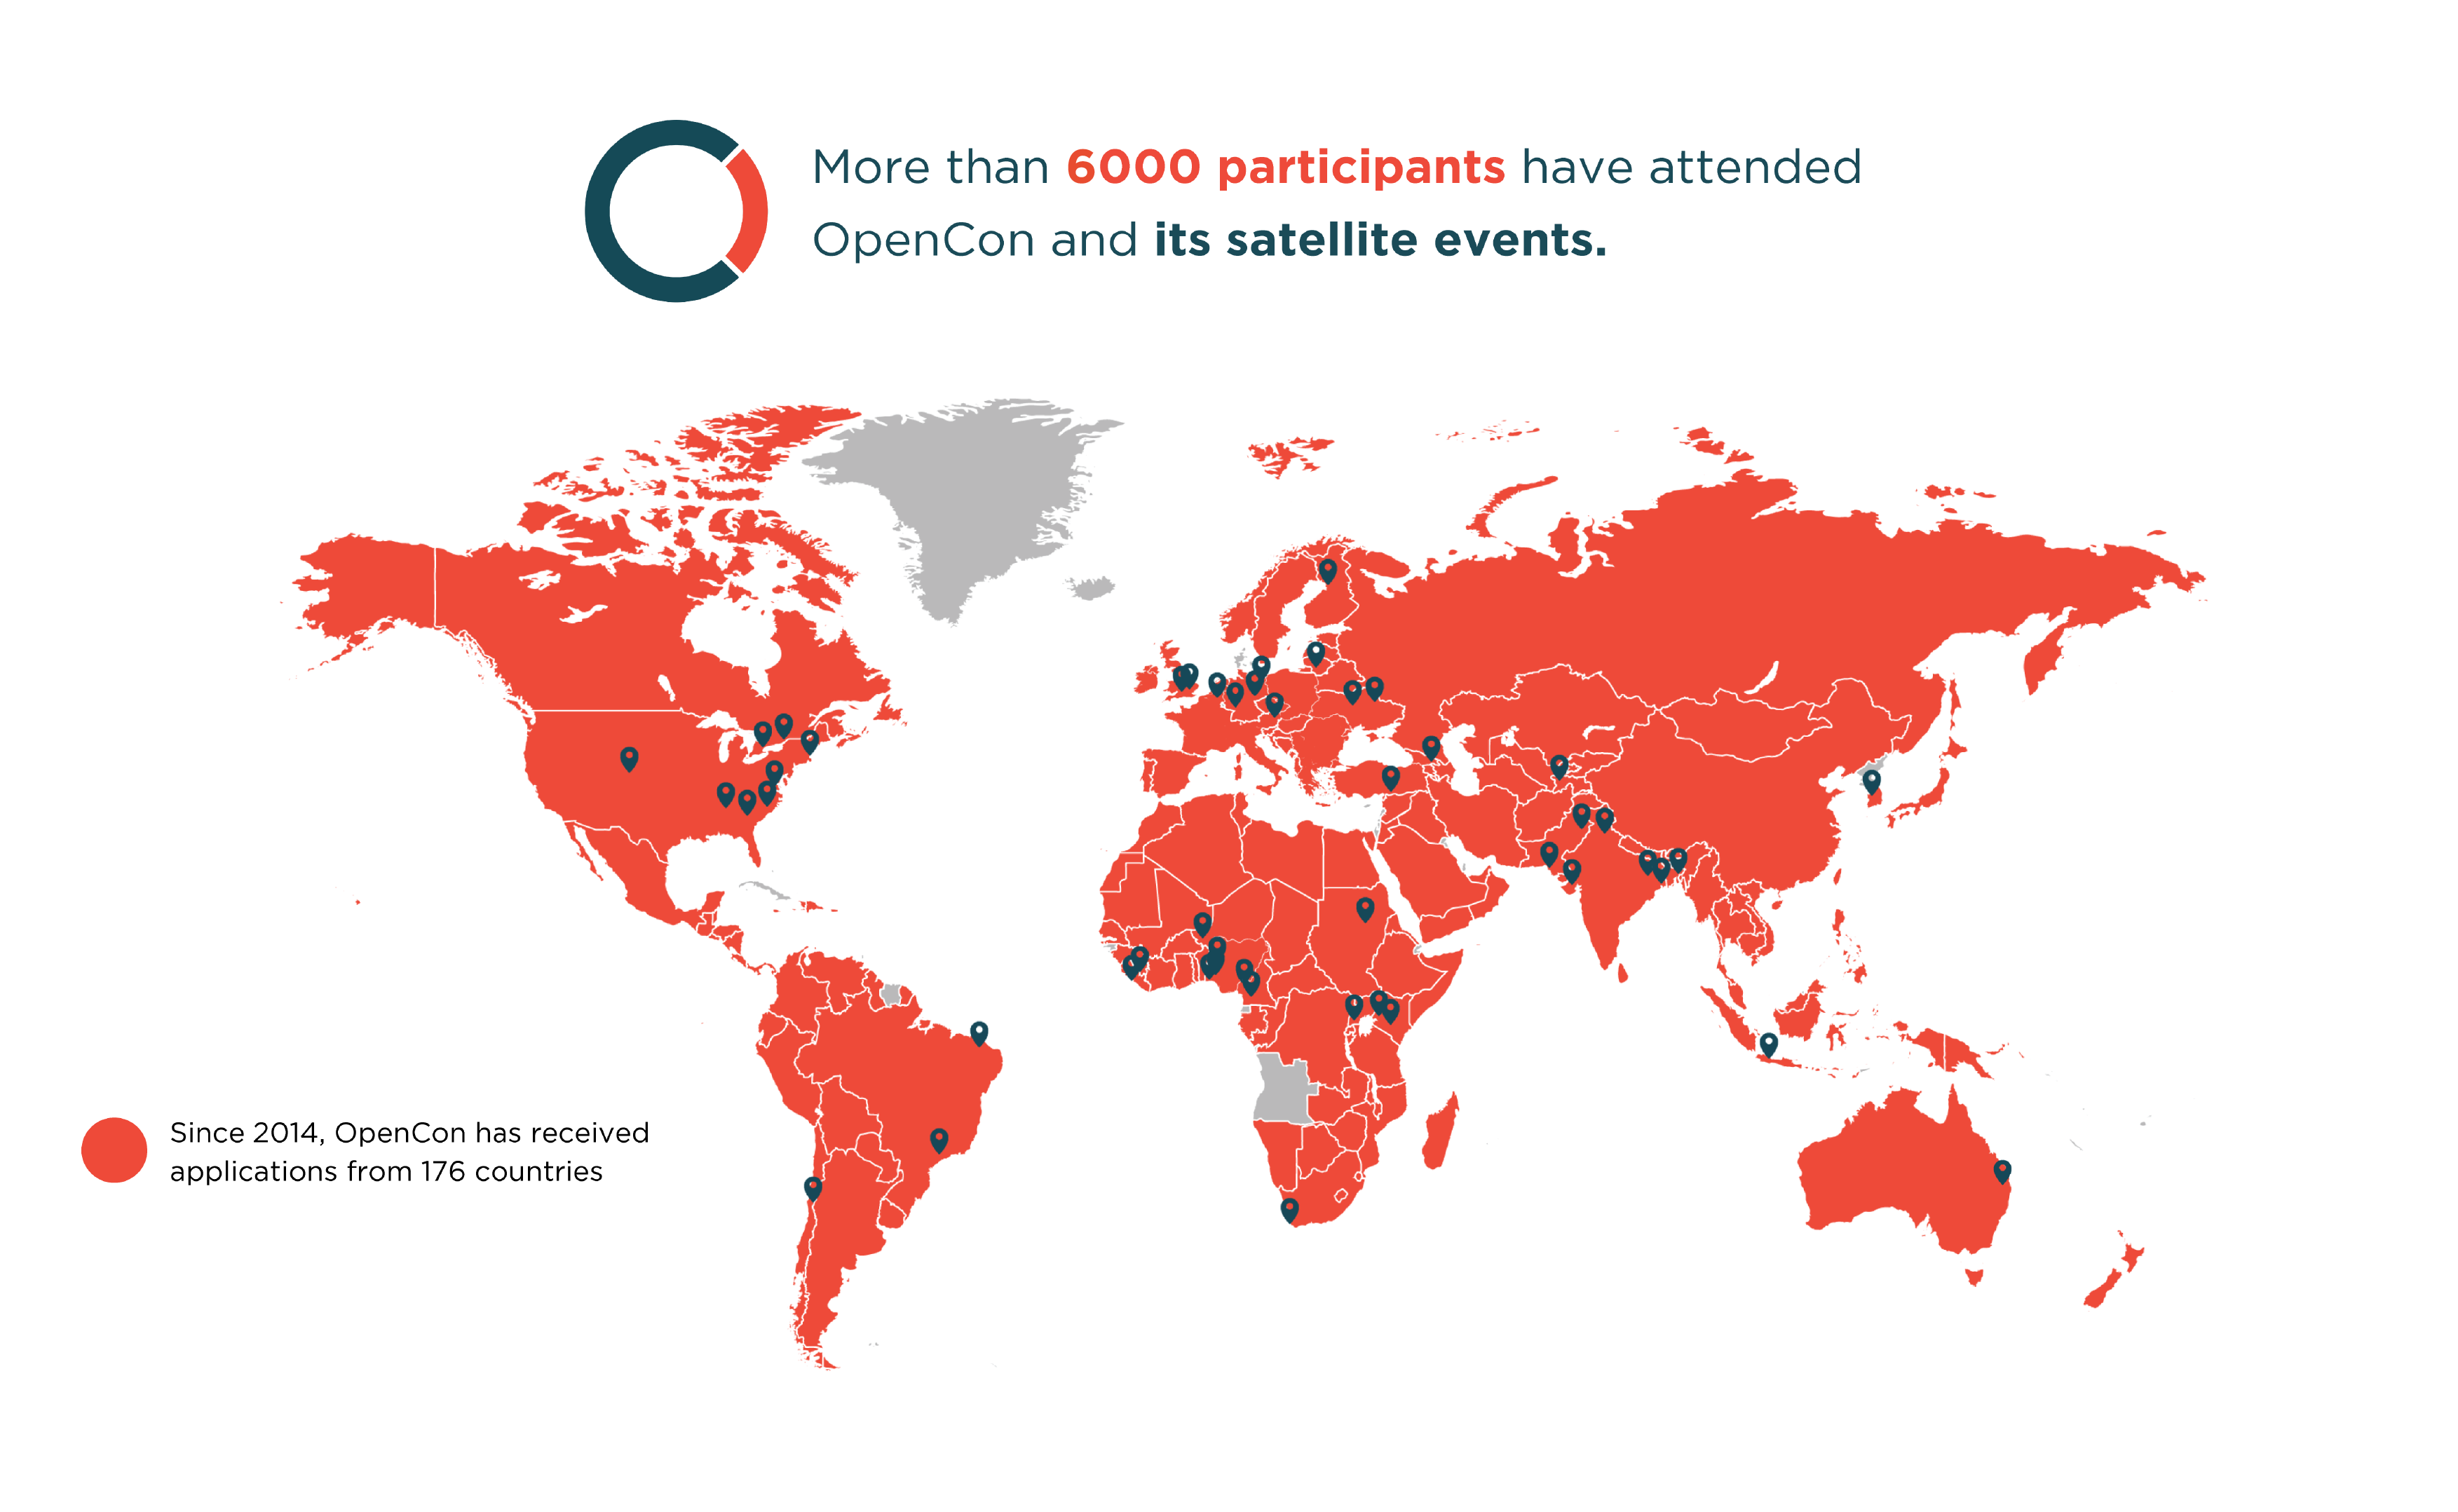 Image 2: Map showing origins of past OpenCon participants